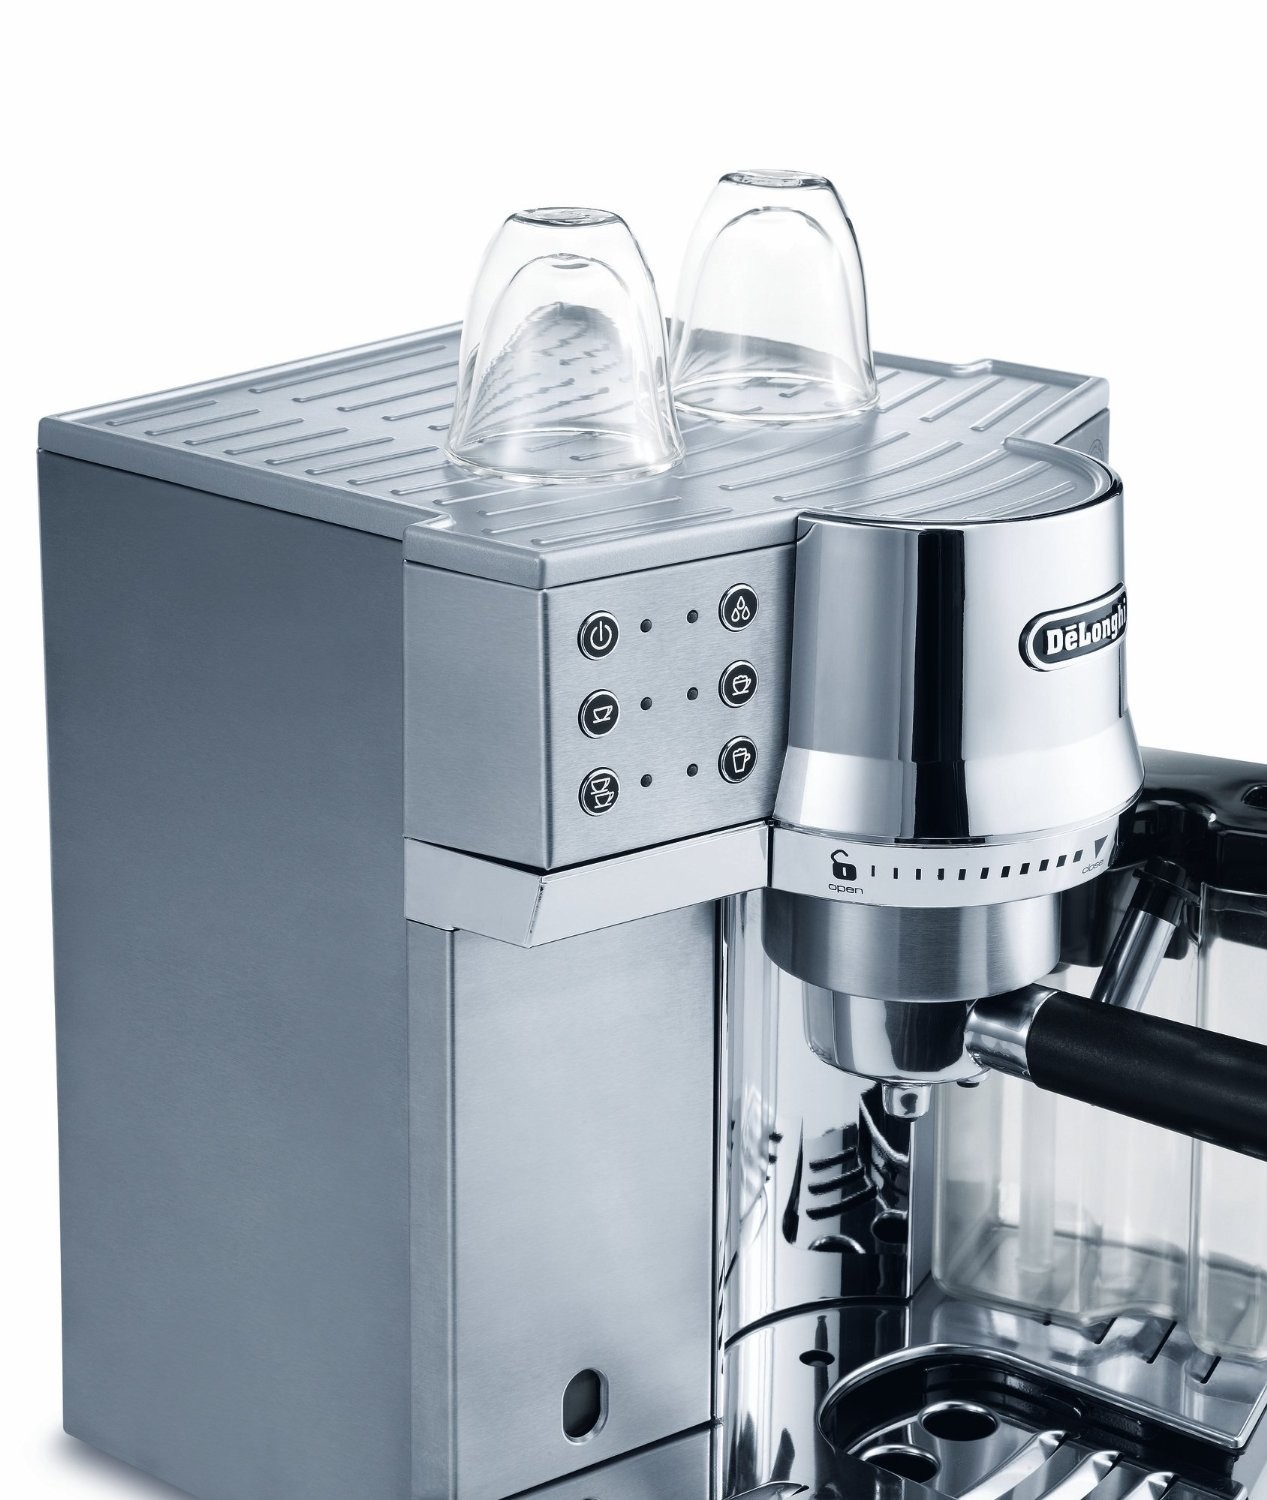 Delonghi Coffee Maker Stainless Steel Carafe : Delonghi ECO850 Pump Espresso - Stainless steel hotpoint.co.ke